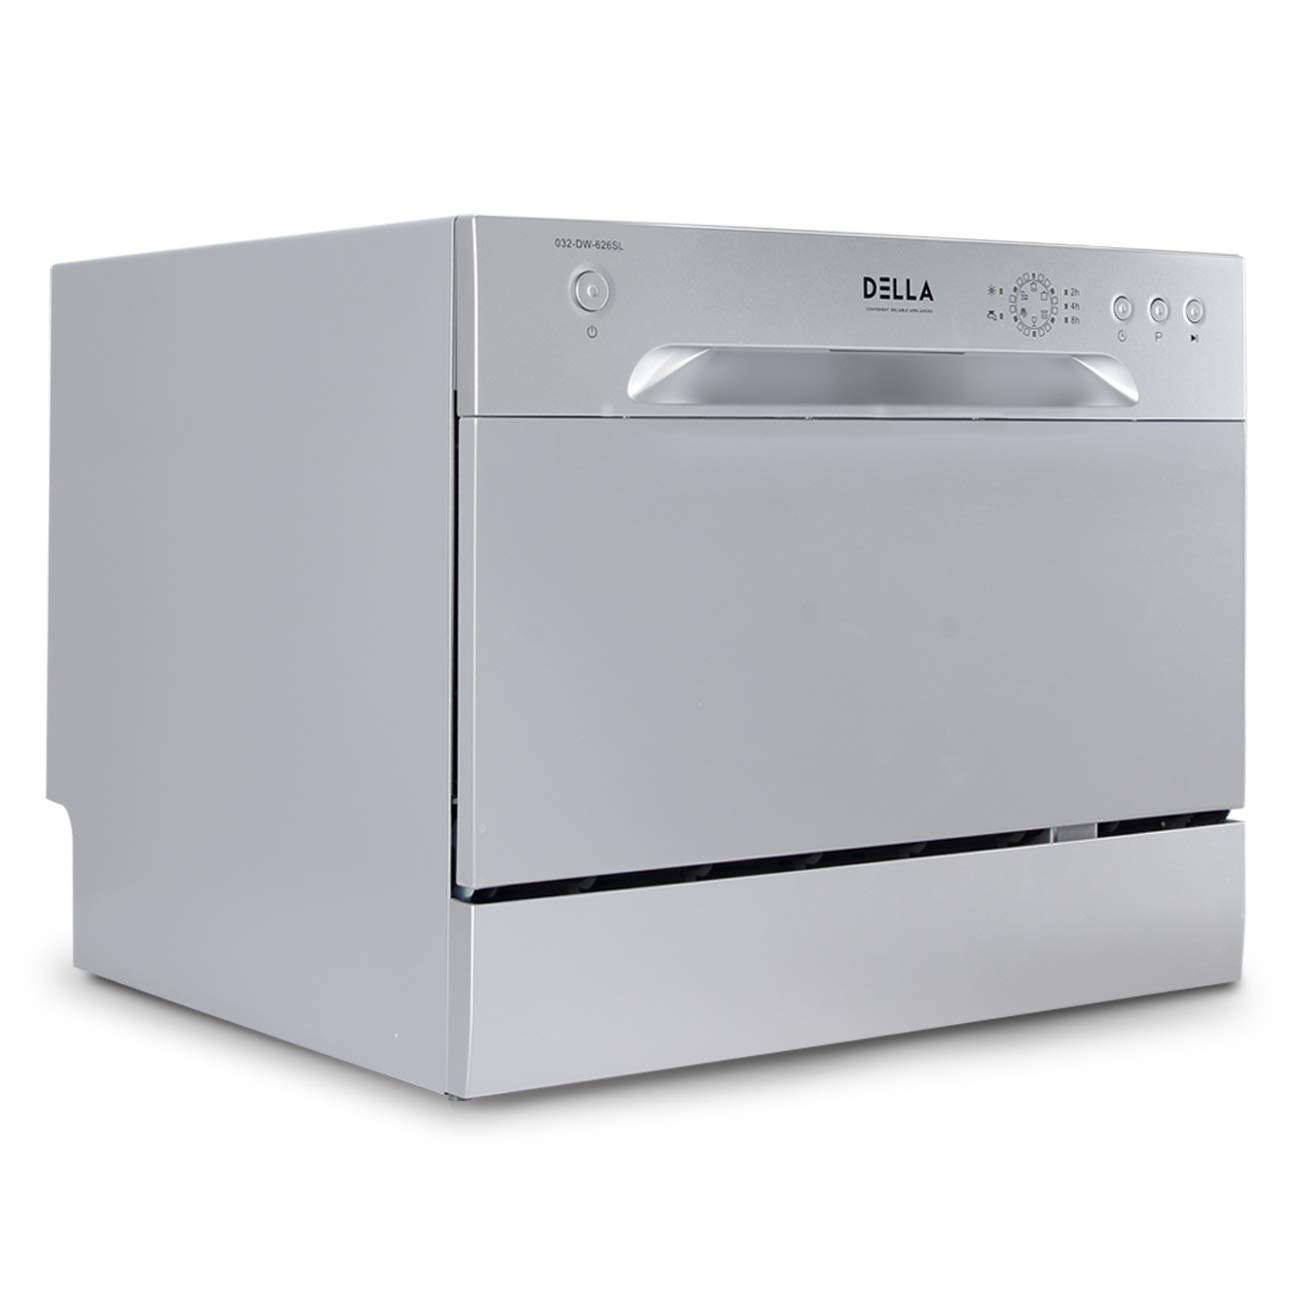 DELLA Compact Dishwasher Countertop Small Kitchen Portable Dishwashers w/ 6 Washer Cycles Setting, Silver